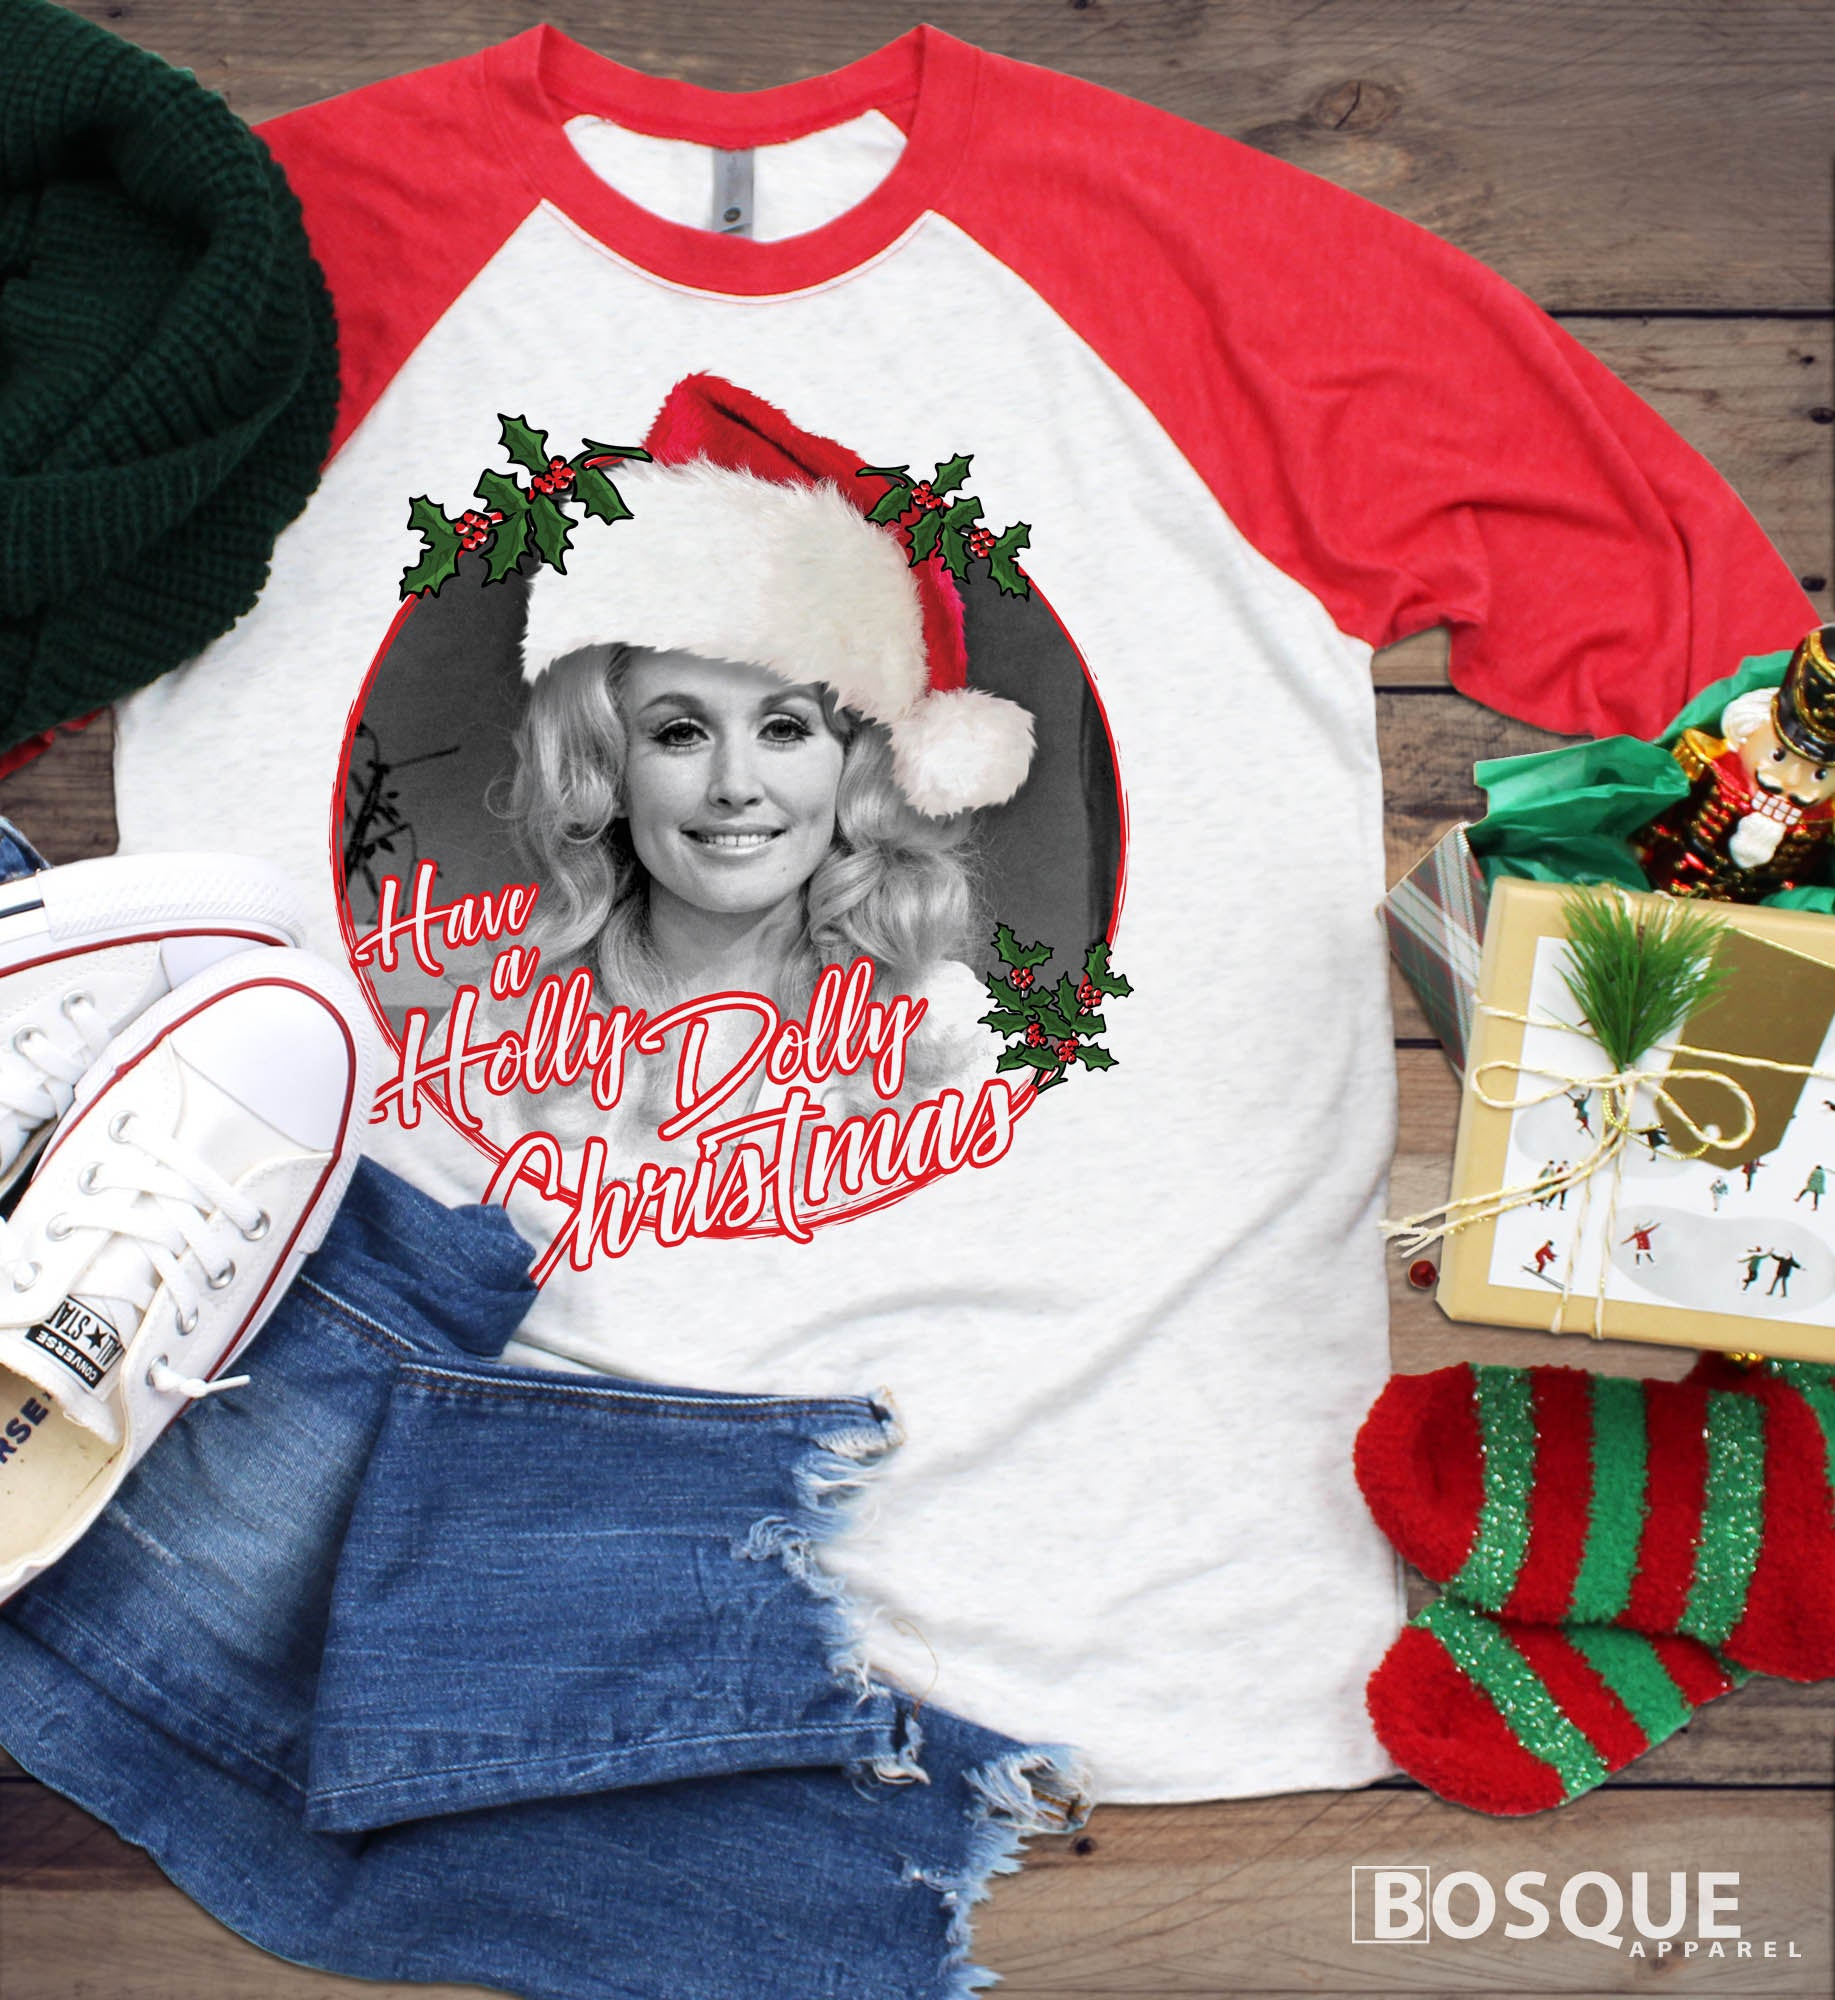 Have a Holly Dolly Christmas -  Country Music Inspired Southern Style Ink Printed 3/4 Sleeve Baseball Raglan Tee